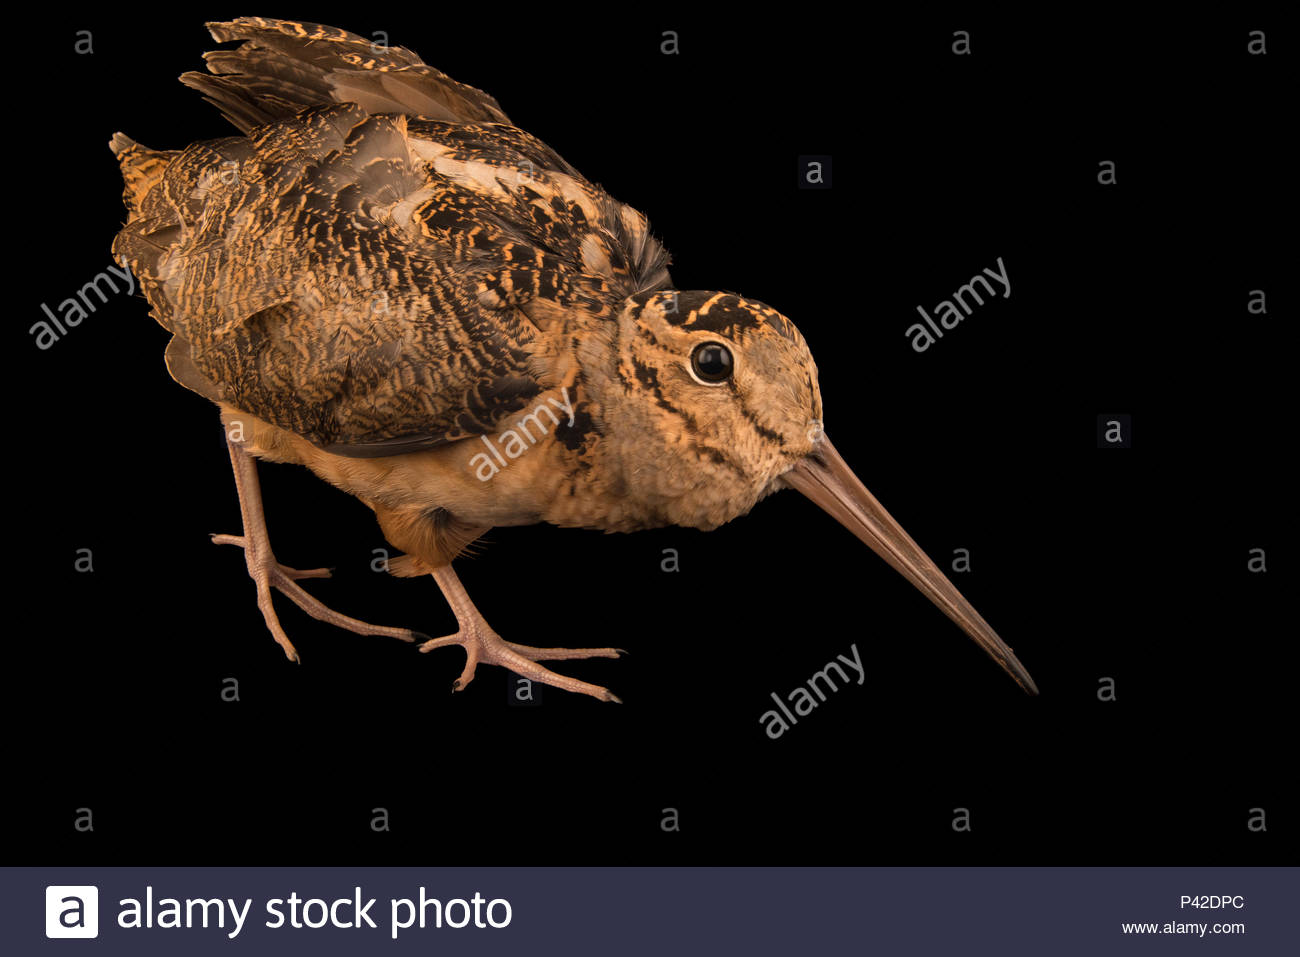 American woodcock, Scolopax minor, at Wildcare in Noble, Oklahoma. - Stock Image